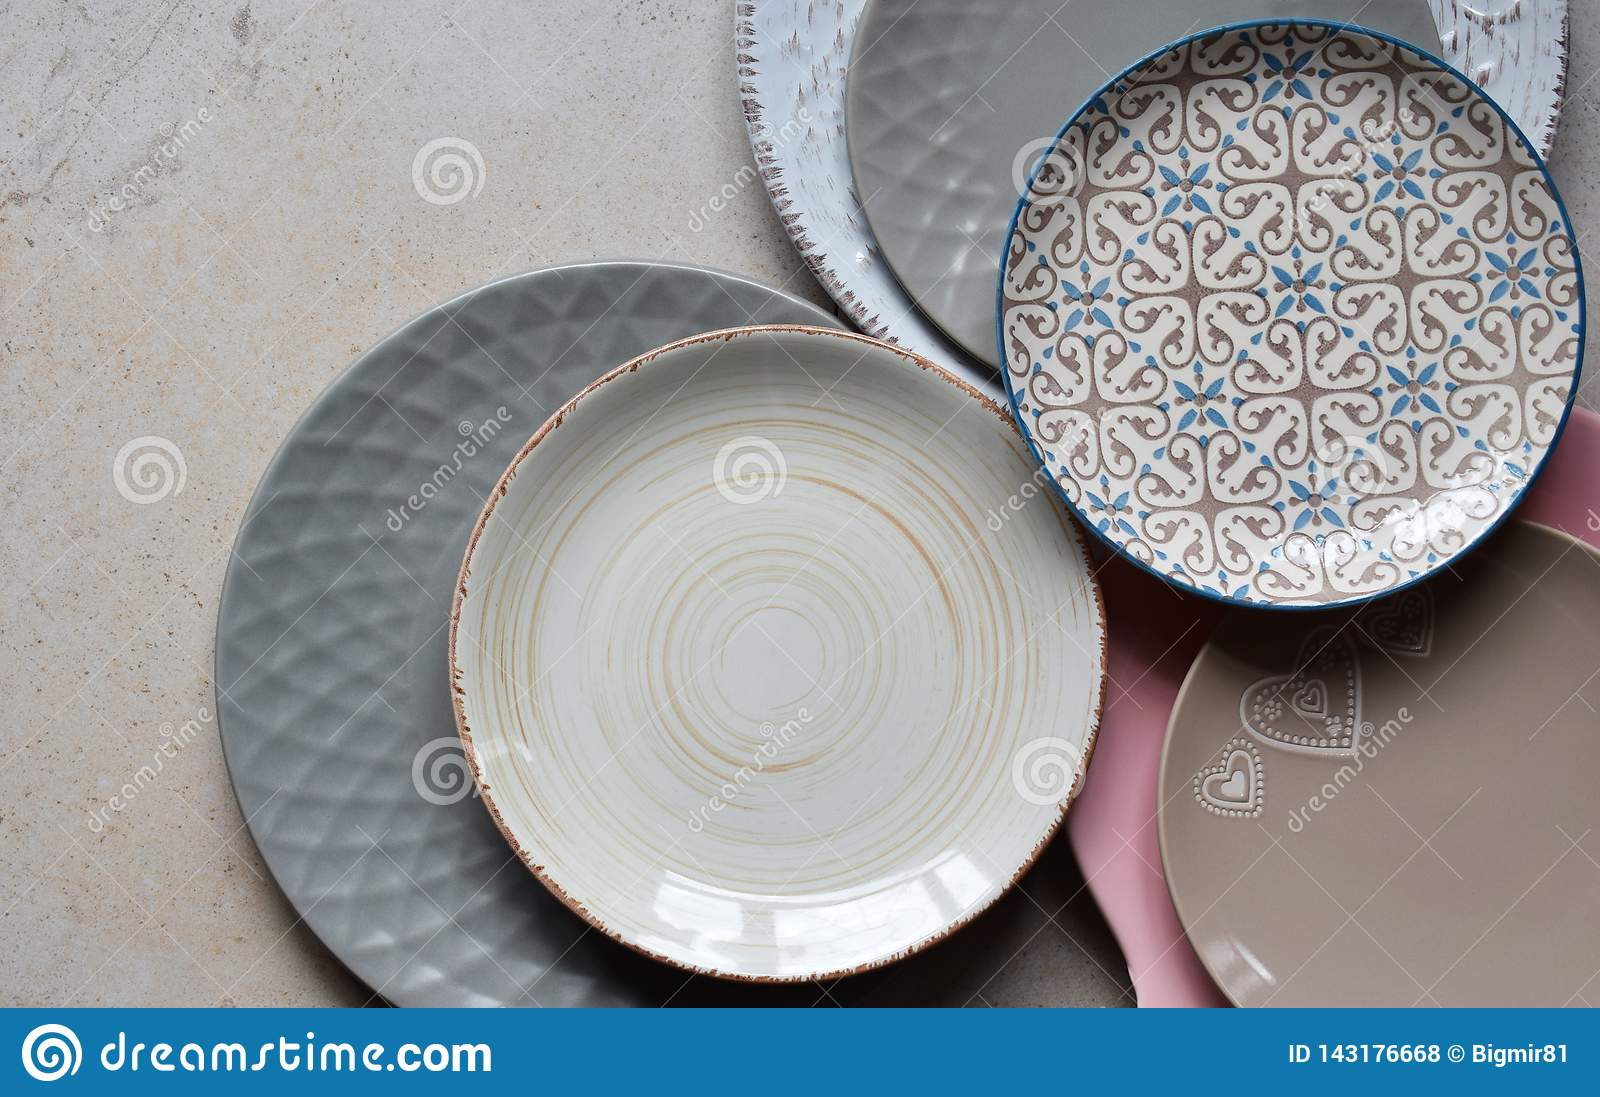 Multicolored empty ceramic plates and bowls on a marble background. Table setting. Shabby chic or retro style. Copy space. Mock up